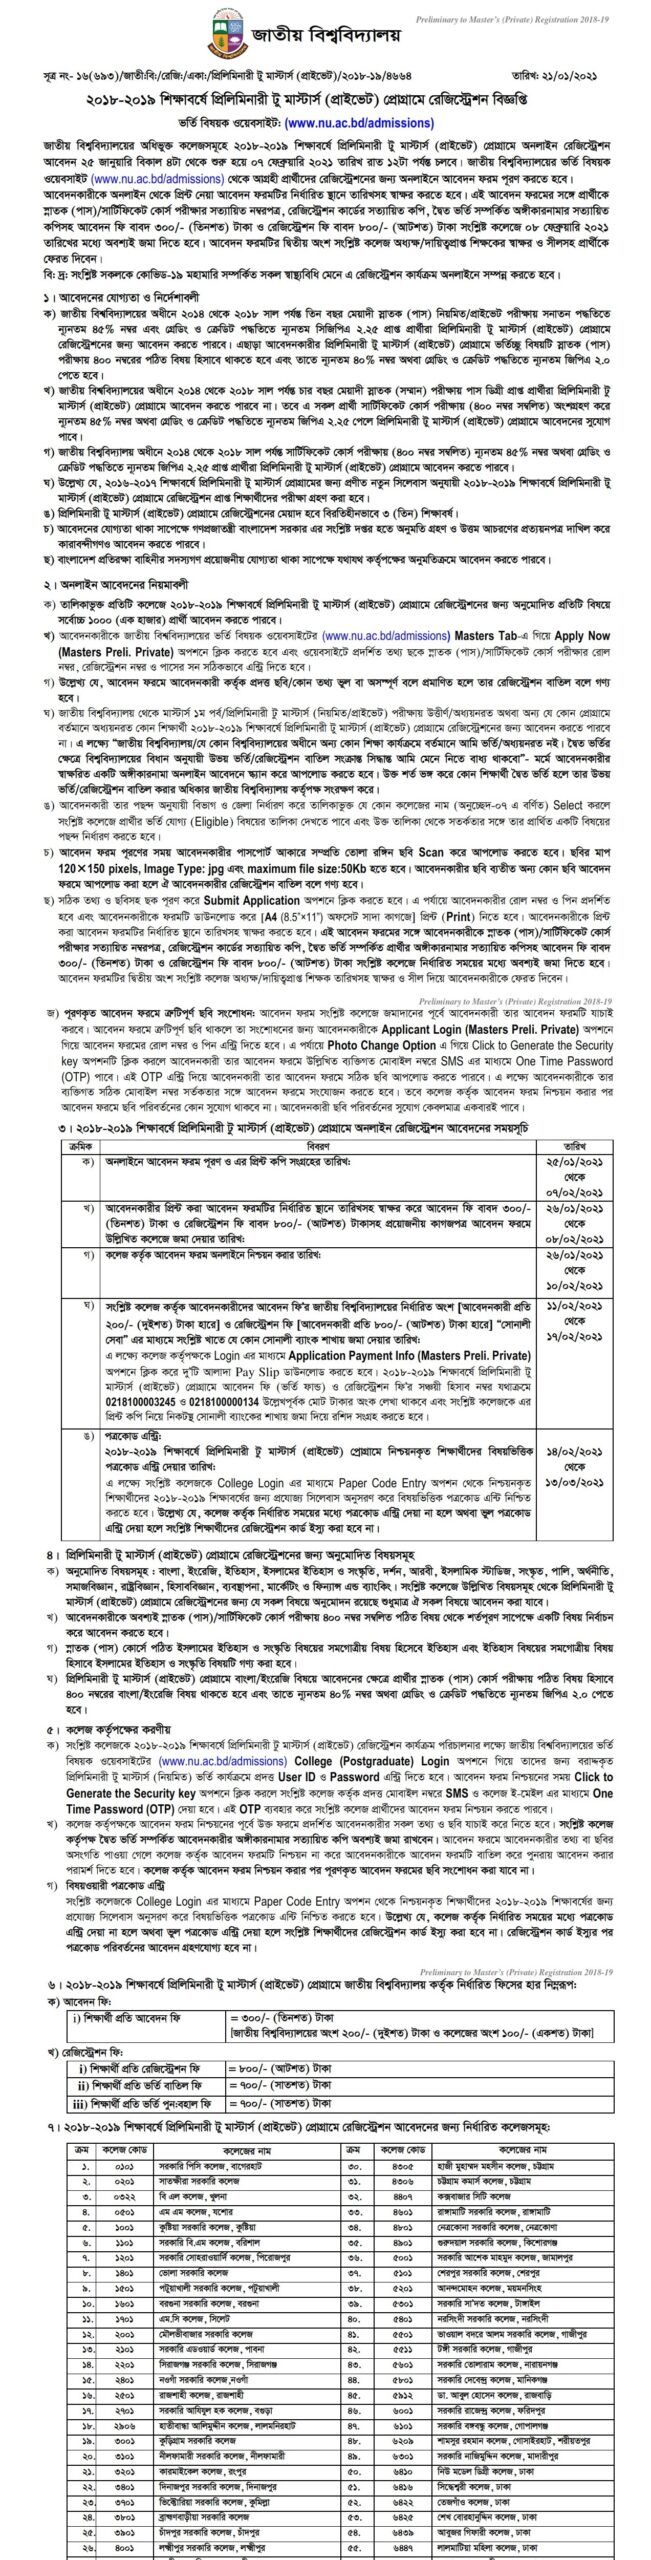 Masters Preliminary (private) Admission Circular 2021